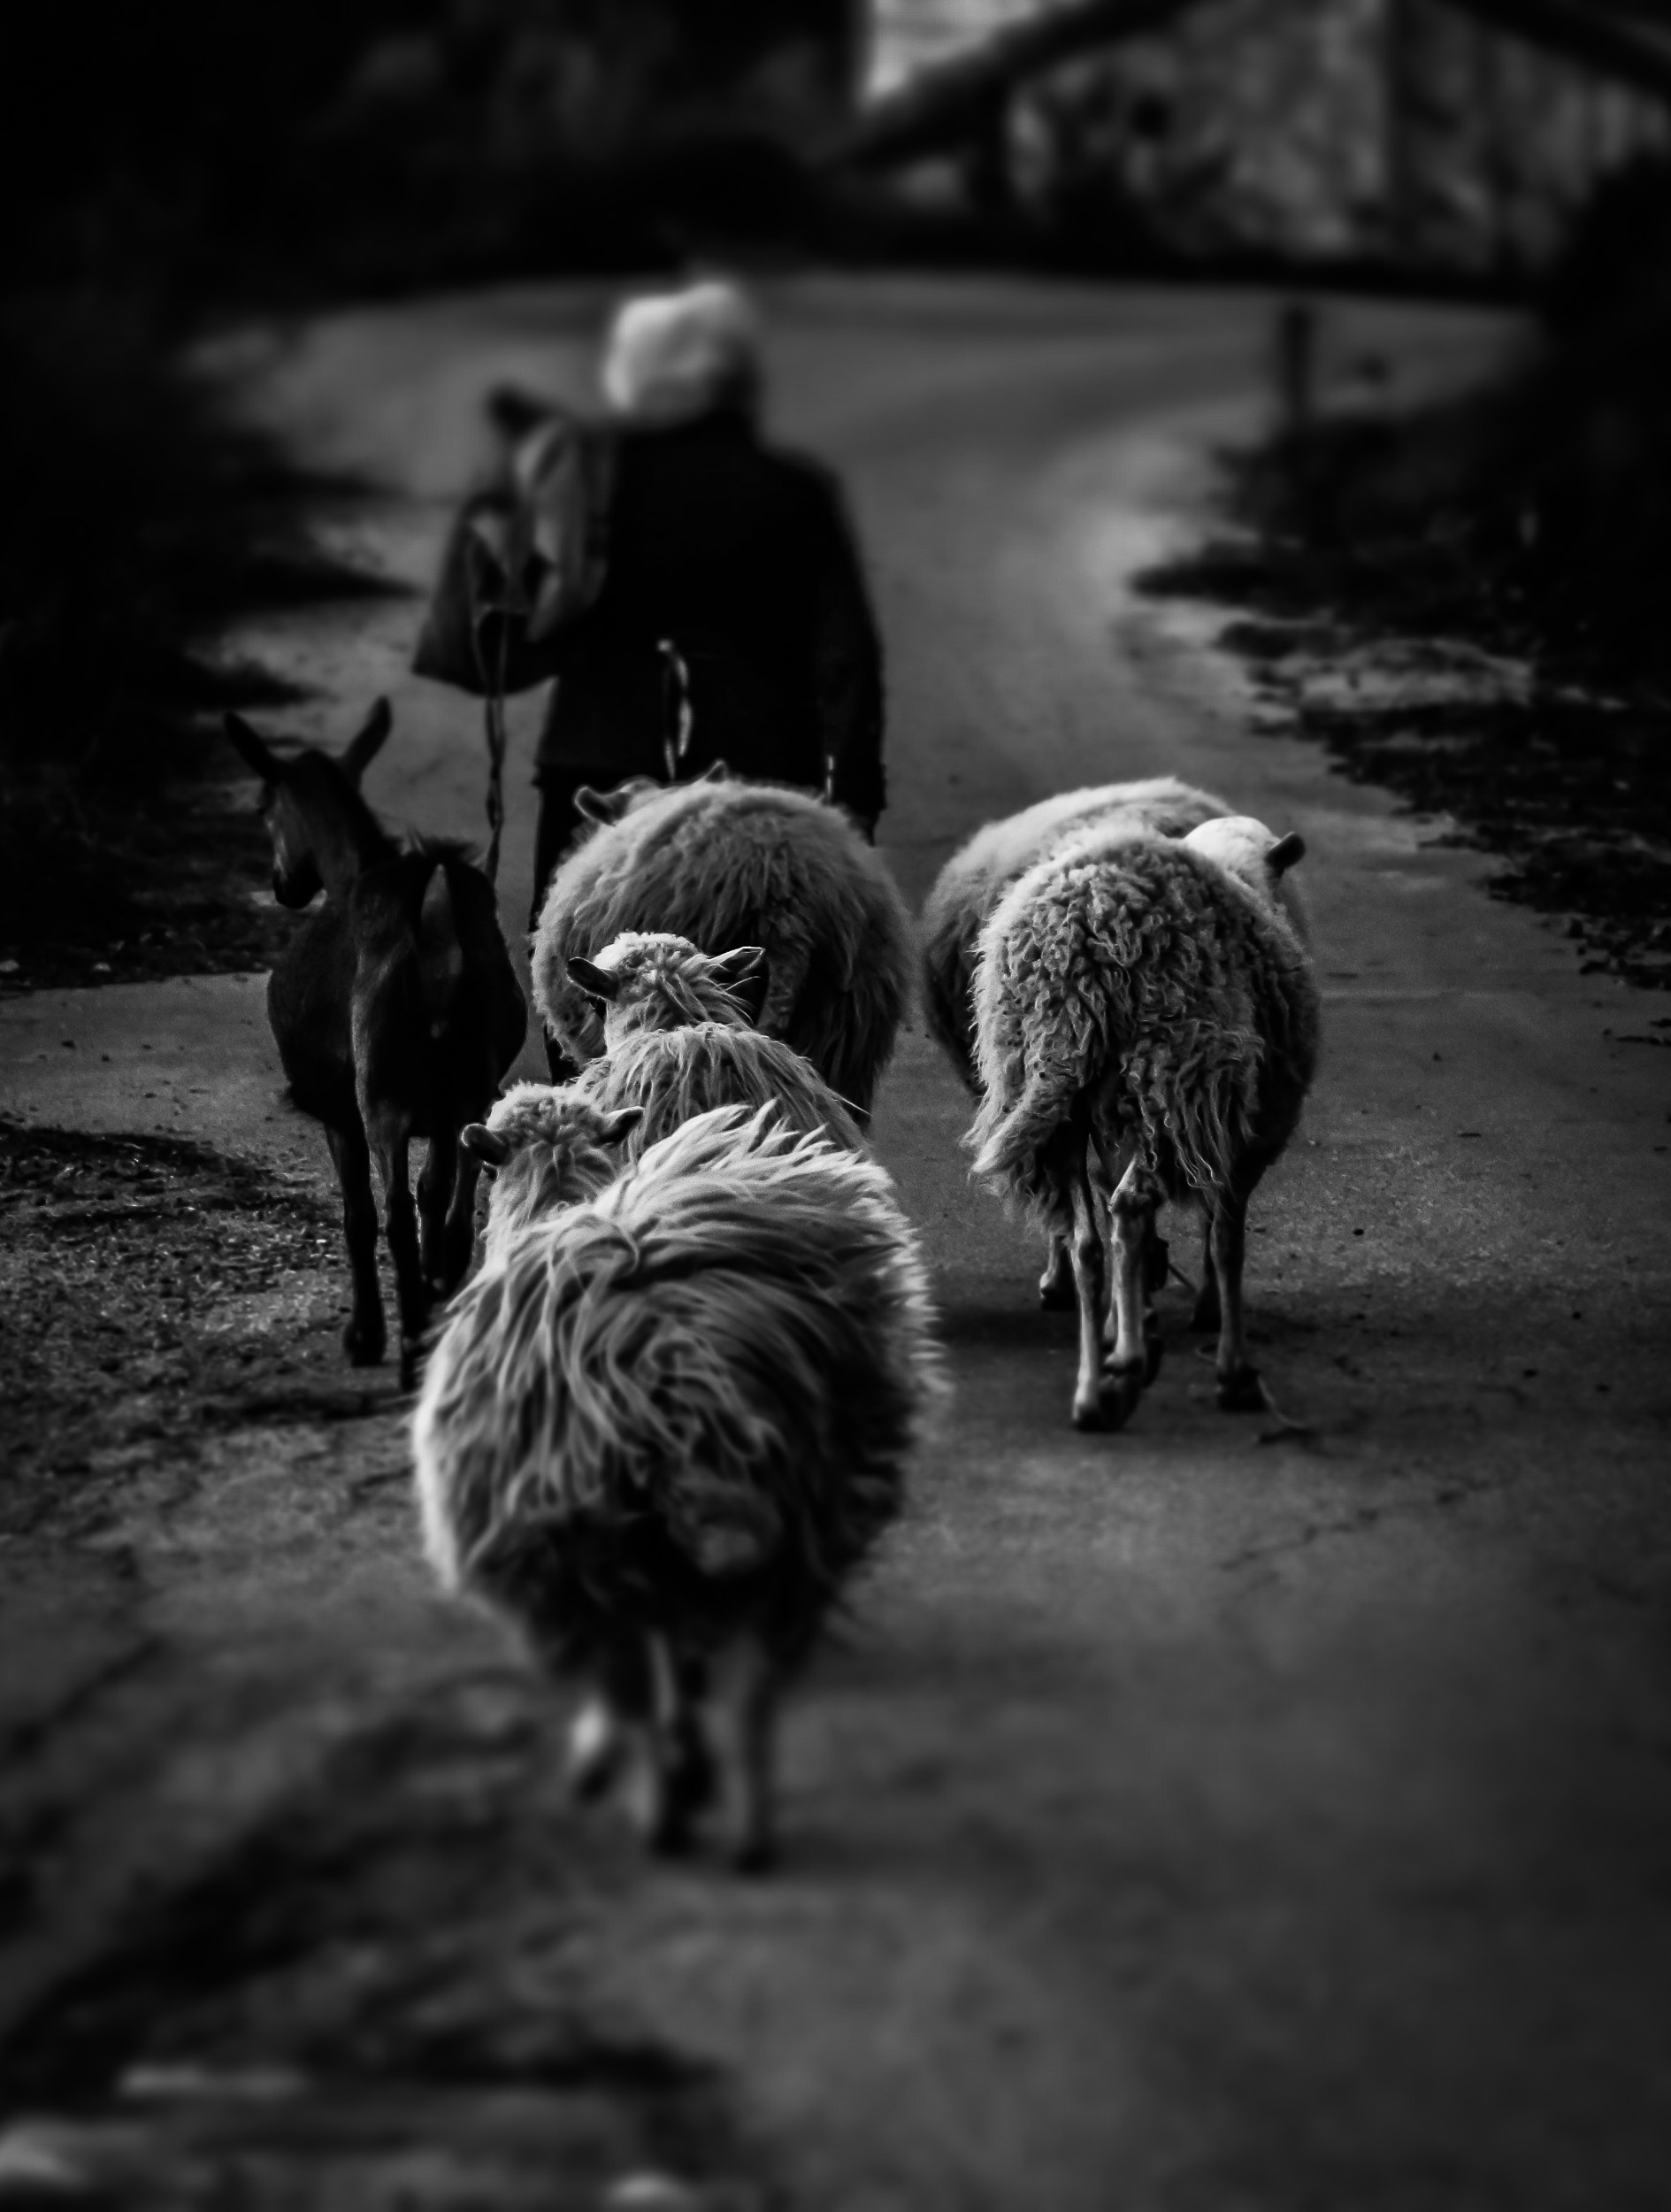 photography-black-and-white-28-stemajourneys.com.jpg